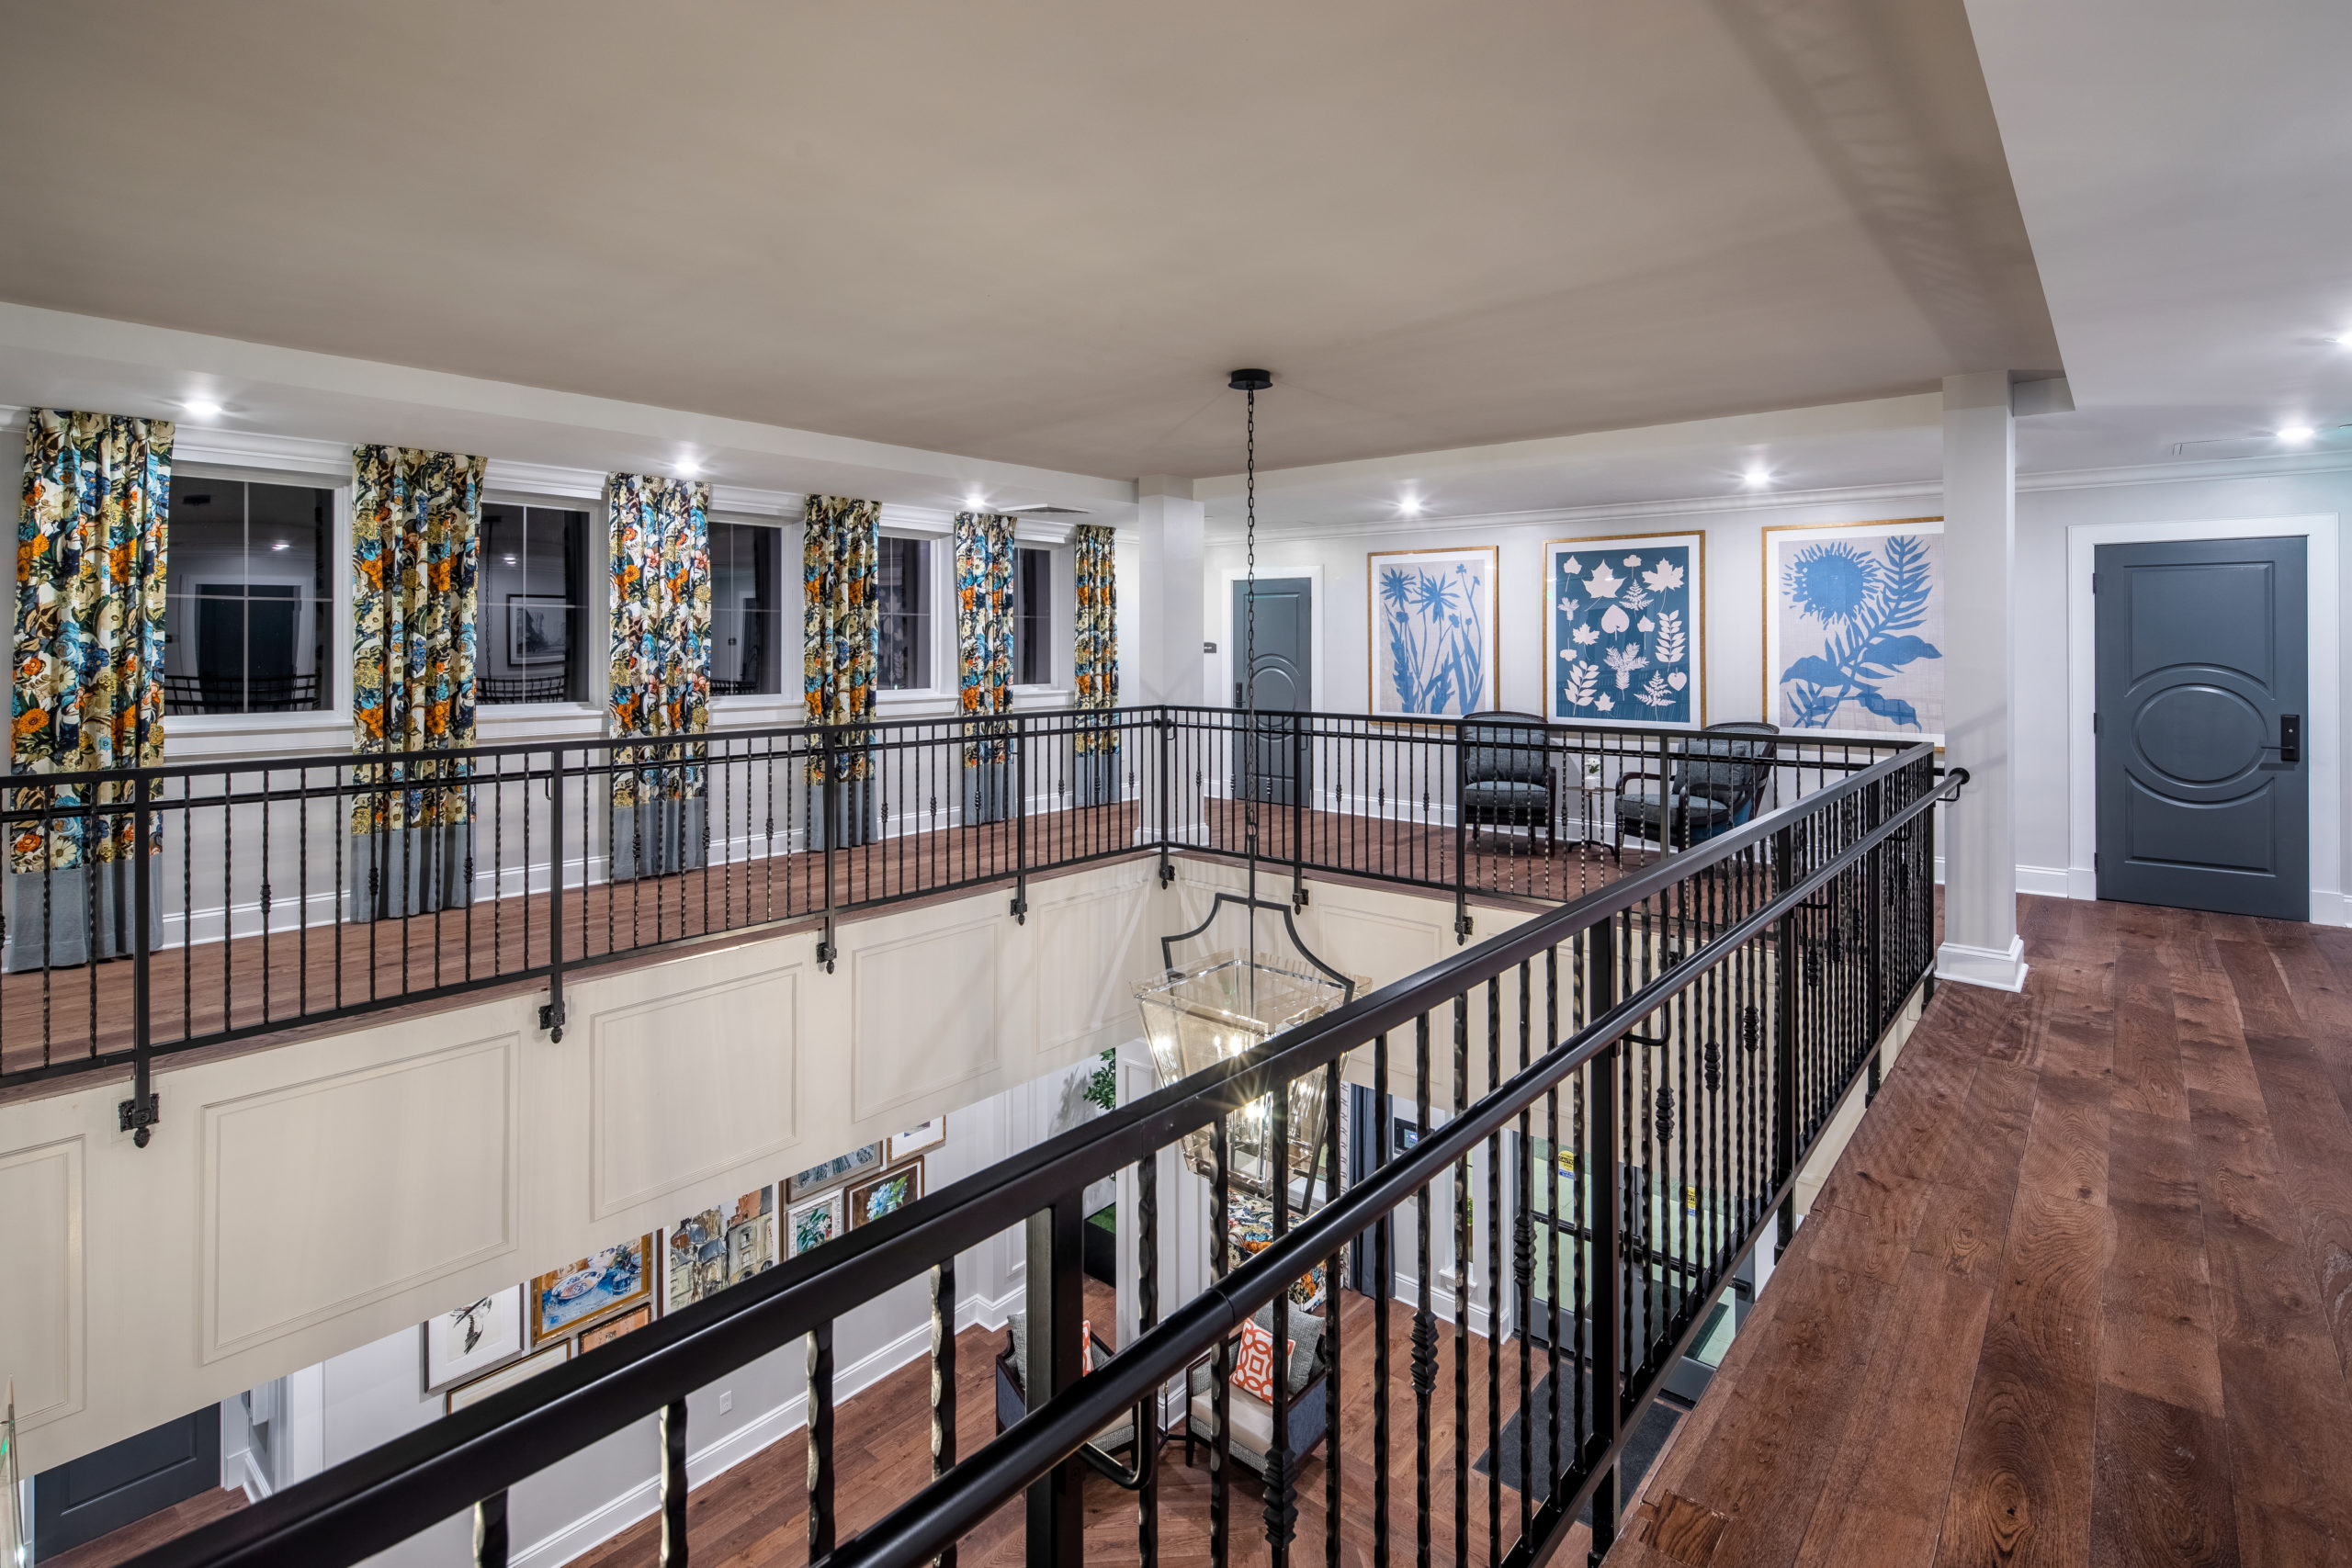 Longleaf second floor atrium with black railing, looking at windows with floral curtains to left, blue doors and paintings to right and first floor foyer below